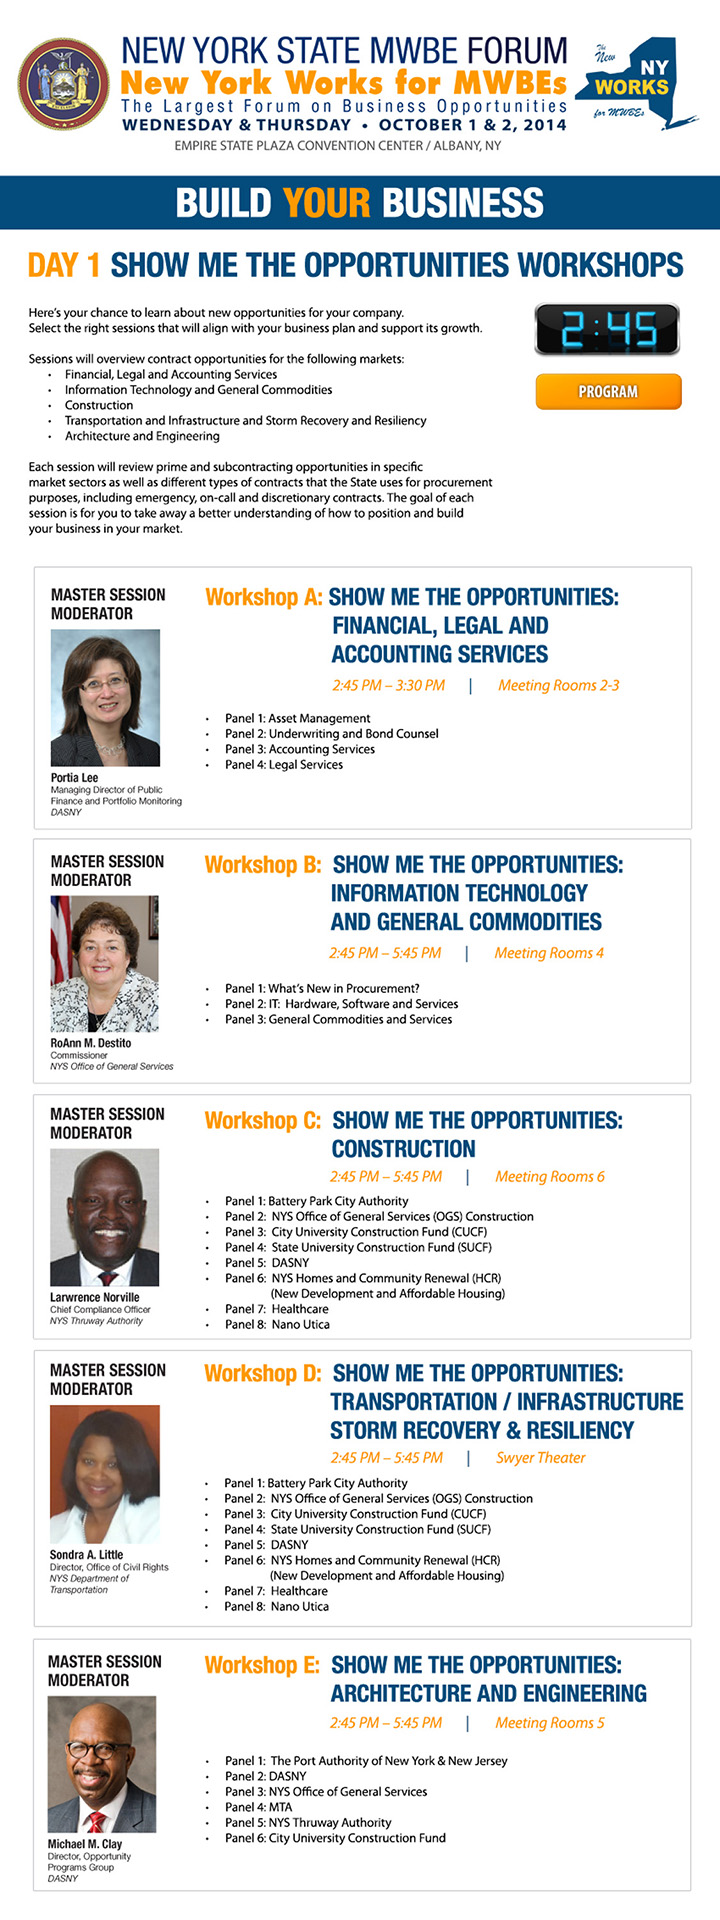 NYS_MWBE_Forum_WORKSHOPS_9-29-14.jpg